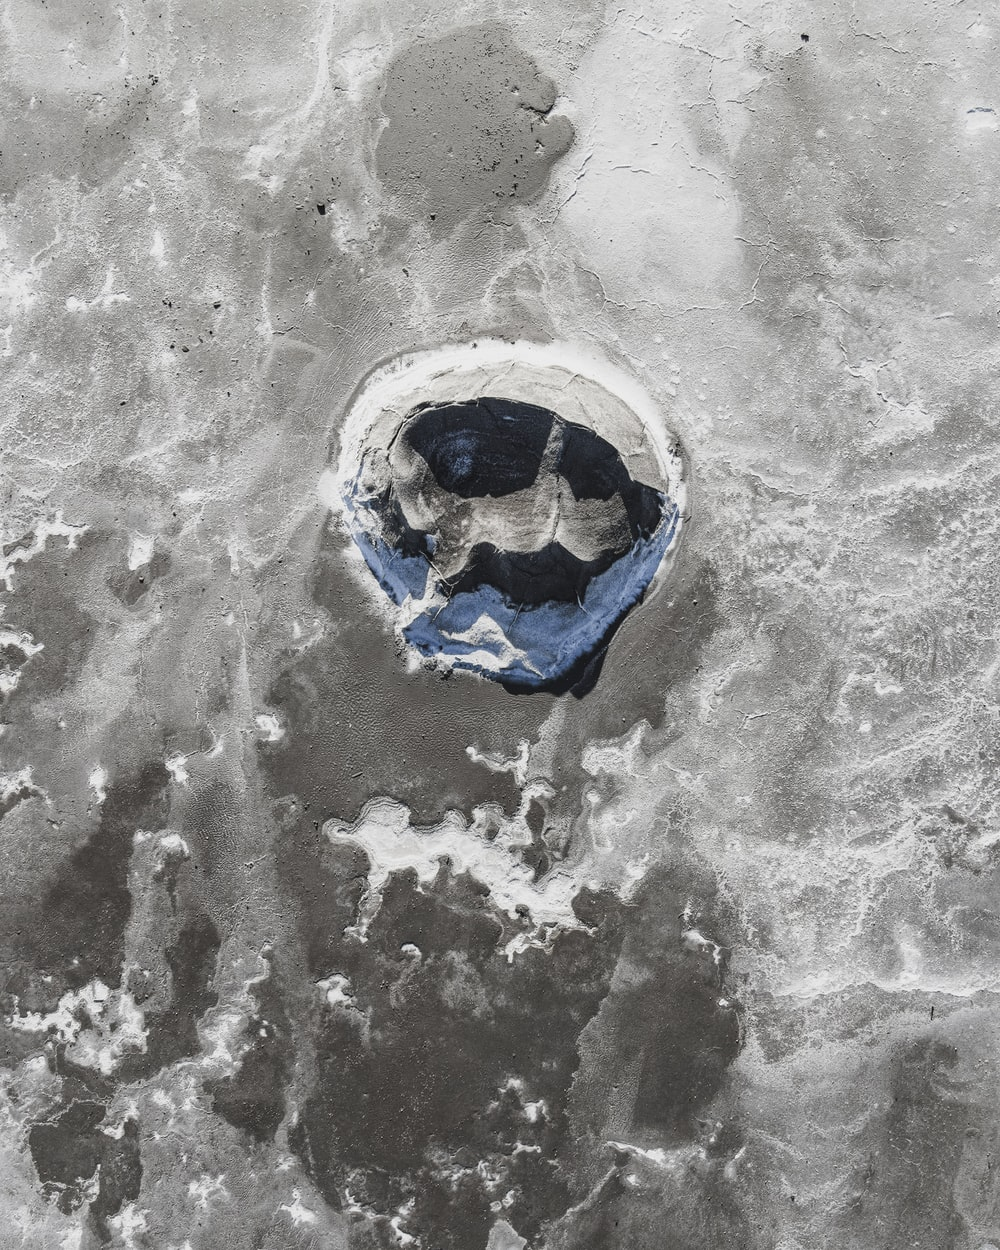 blue and white ball on white sand